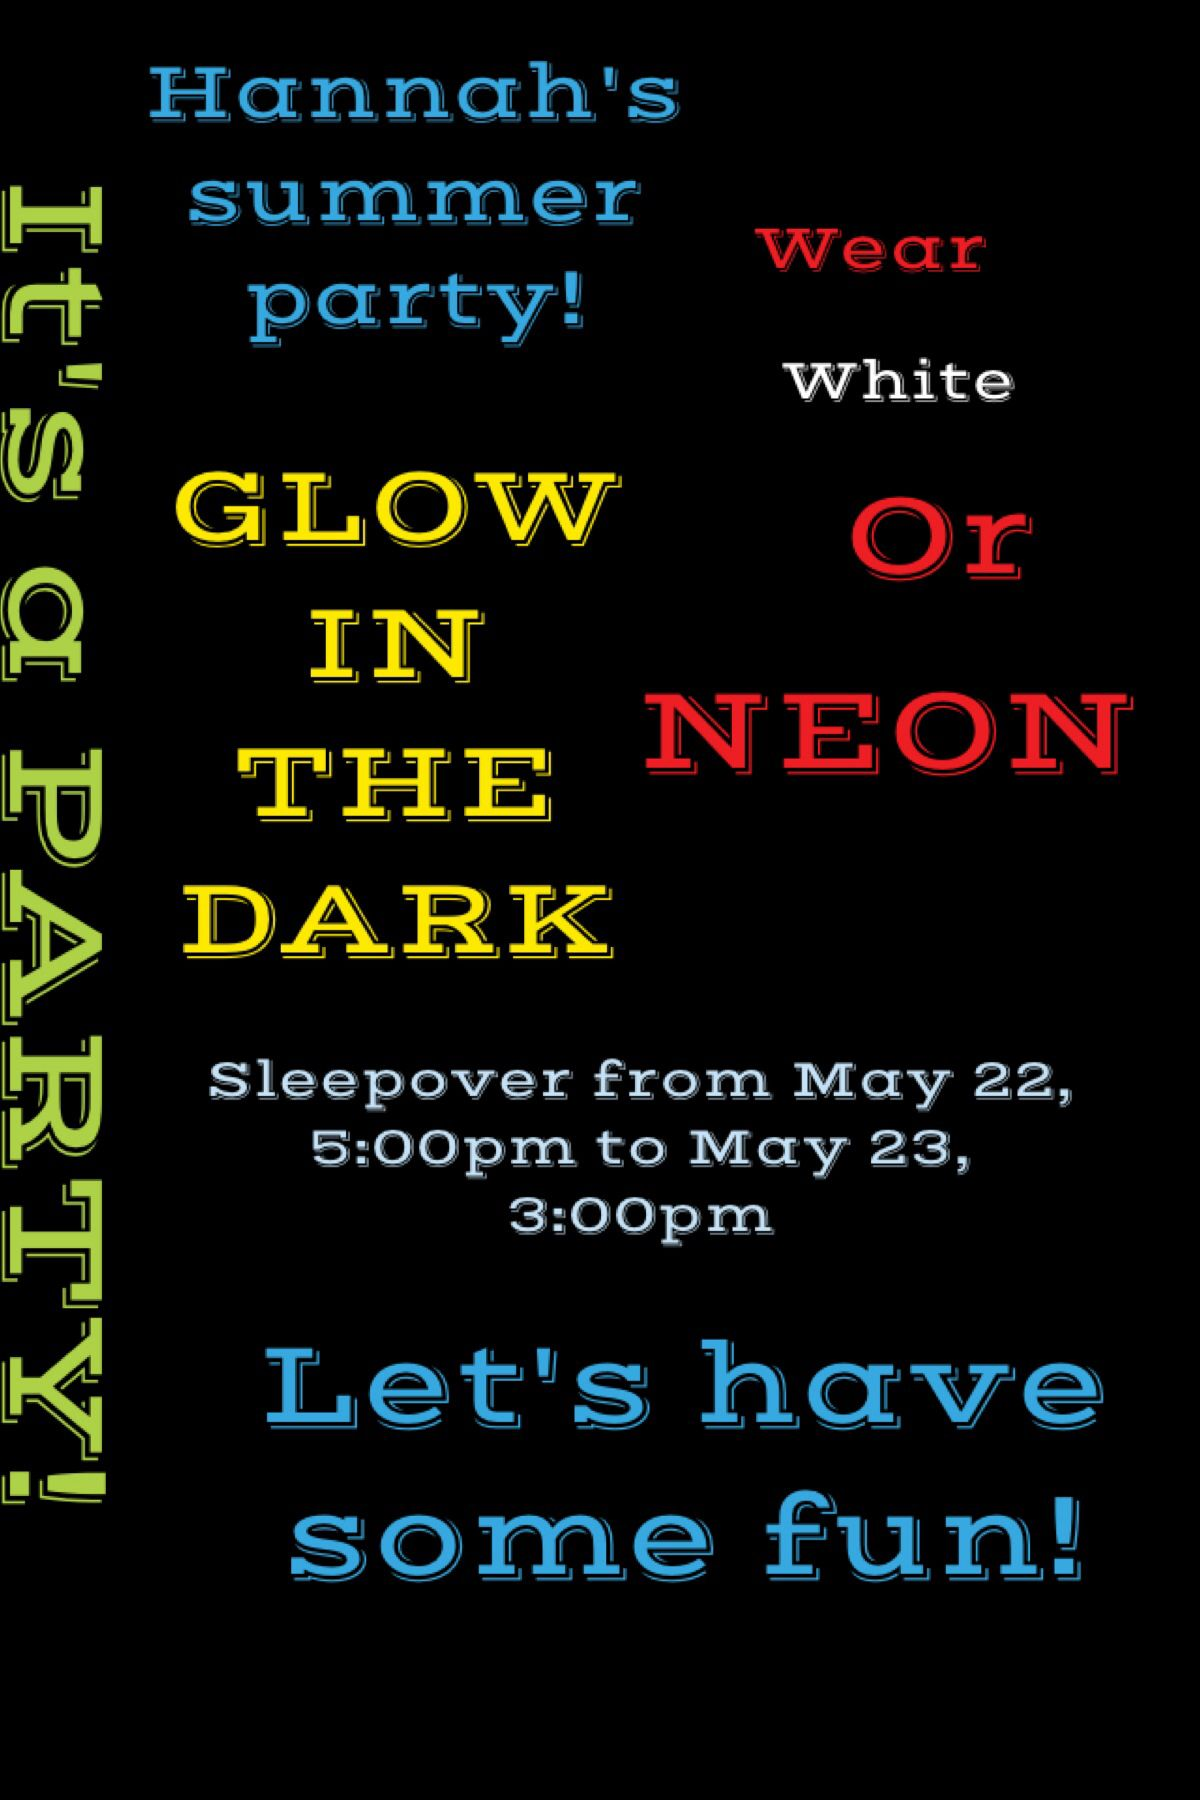 Glow in the dark party invitation! | Glow party | Pinterest | Party ...